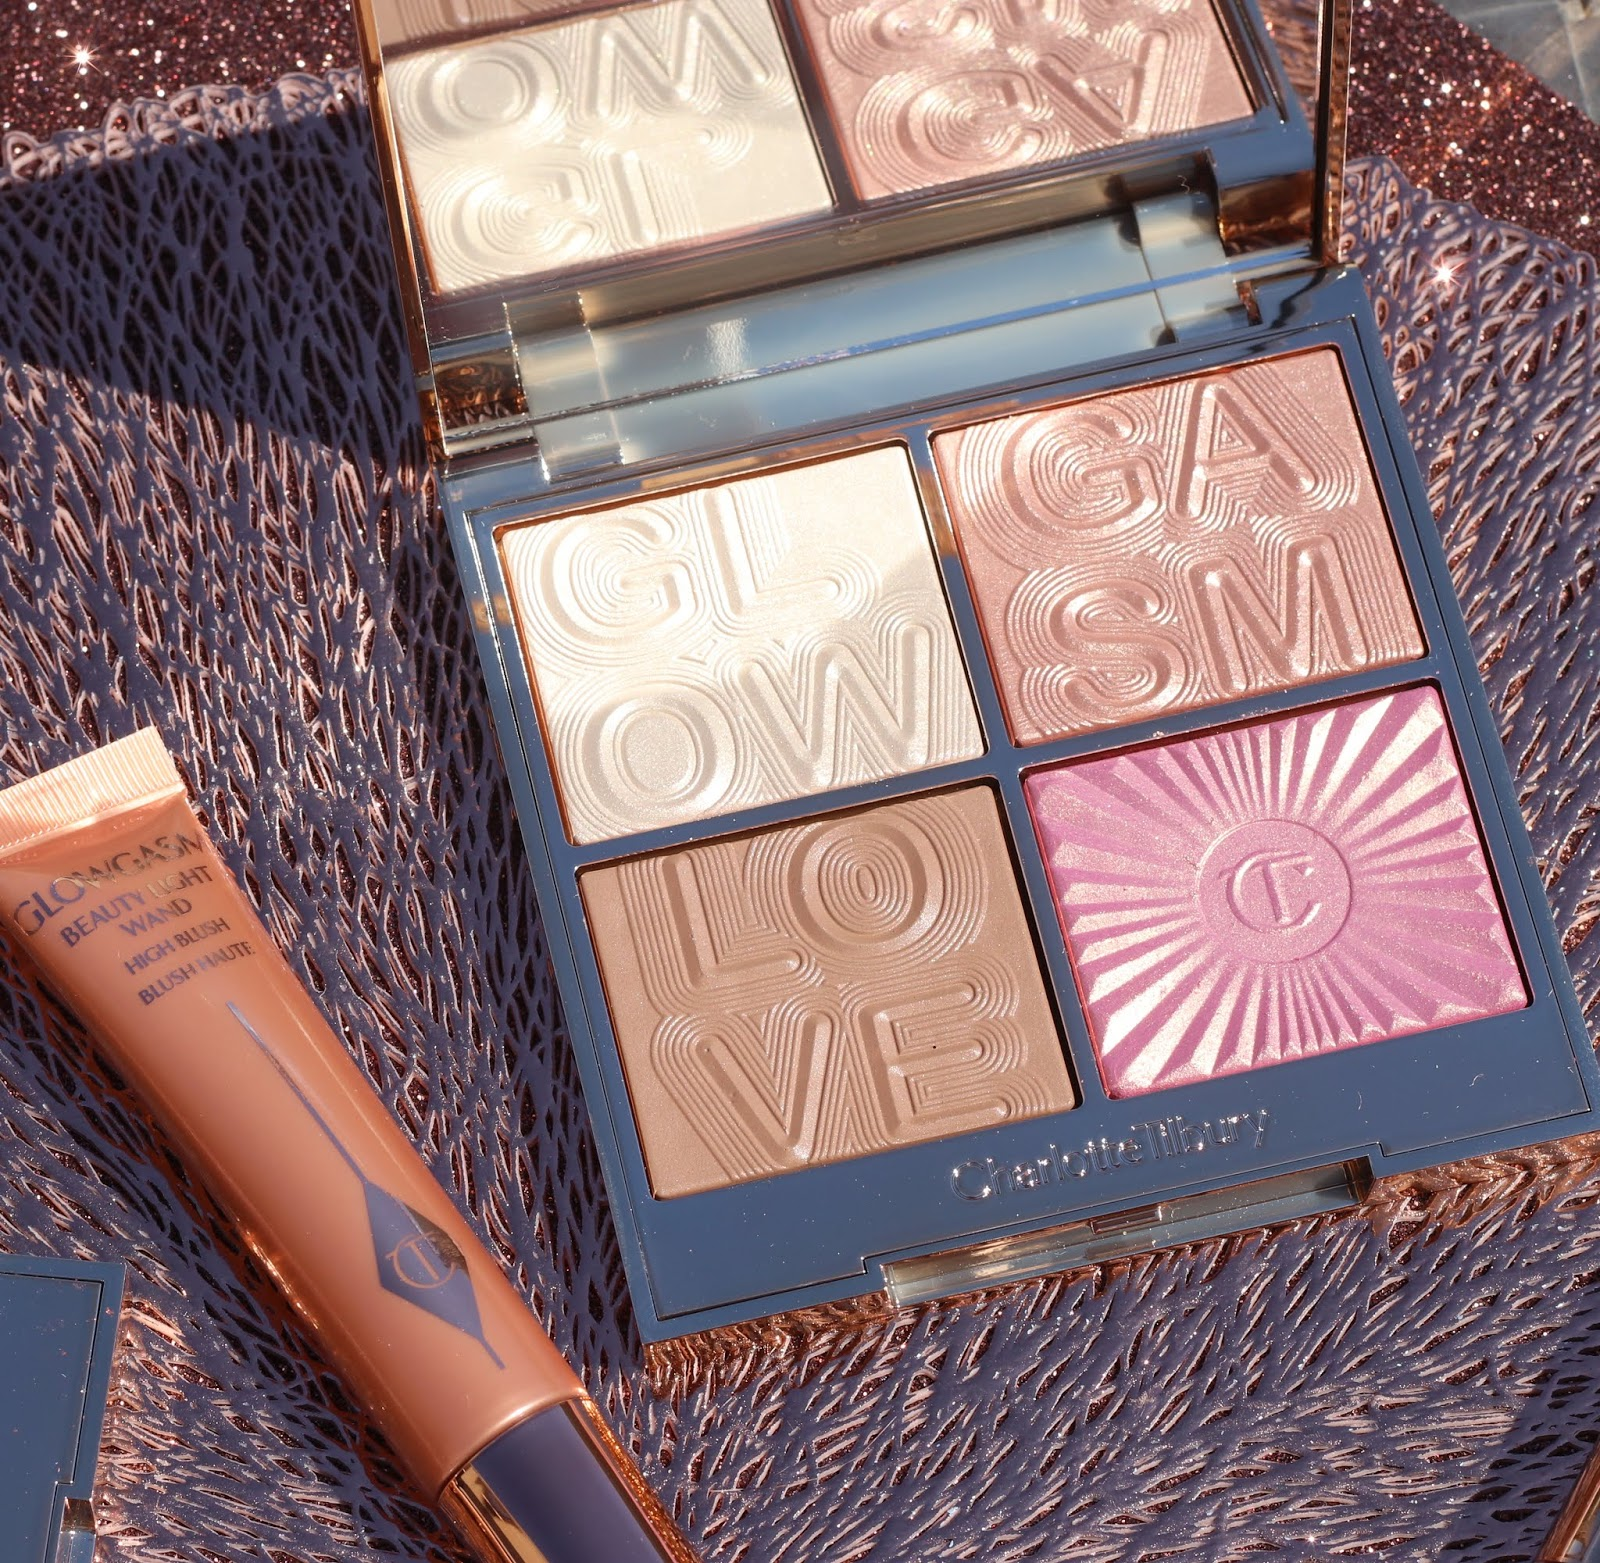 Charlotte Tilbury Glowgasm face palettes review, photos, swatches & video - which one do I prefer?